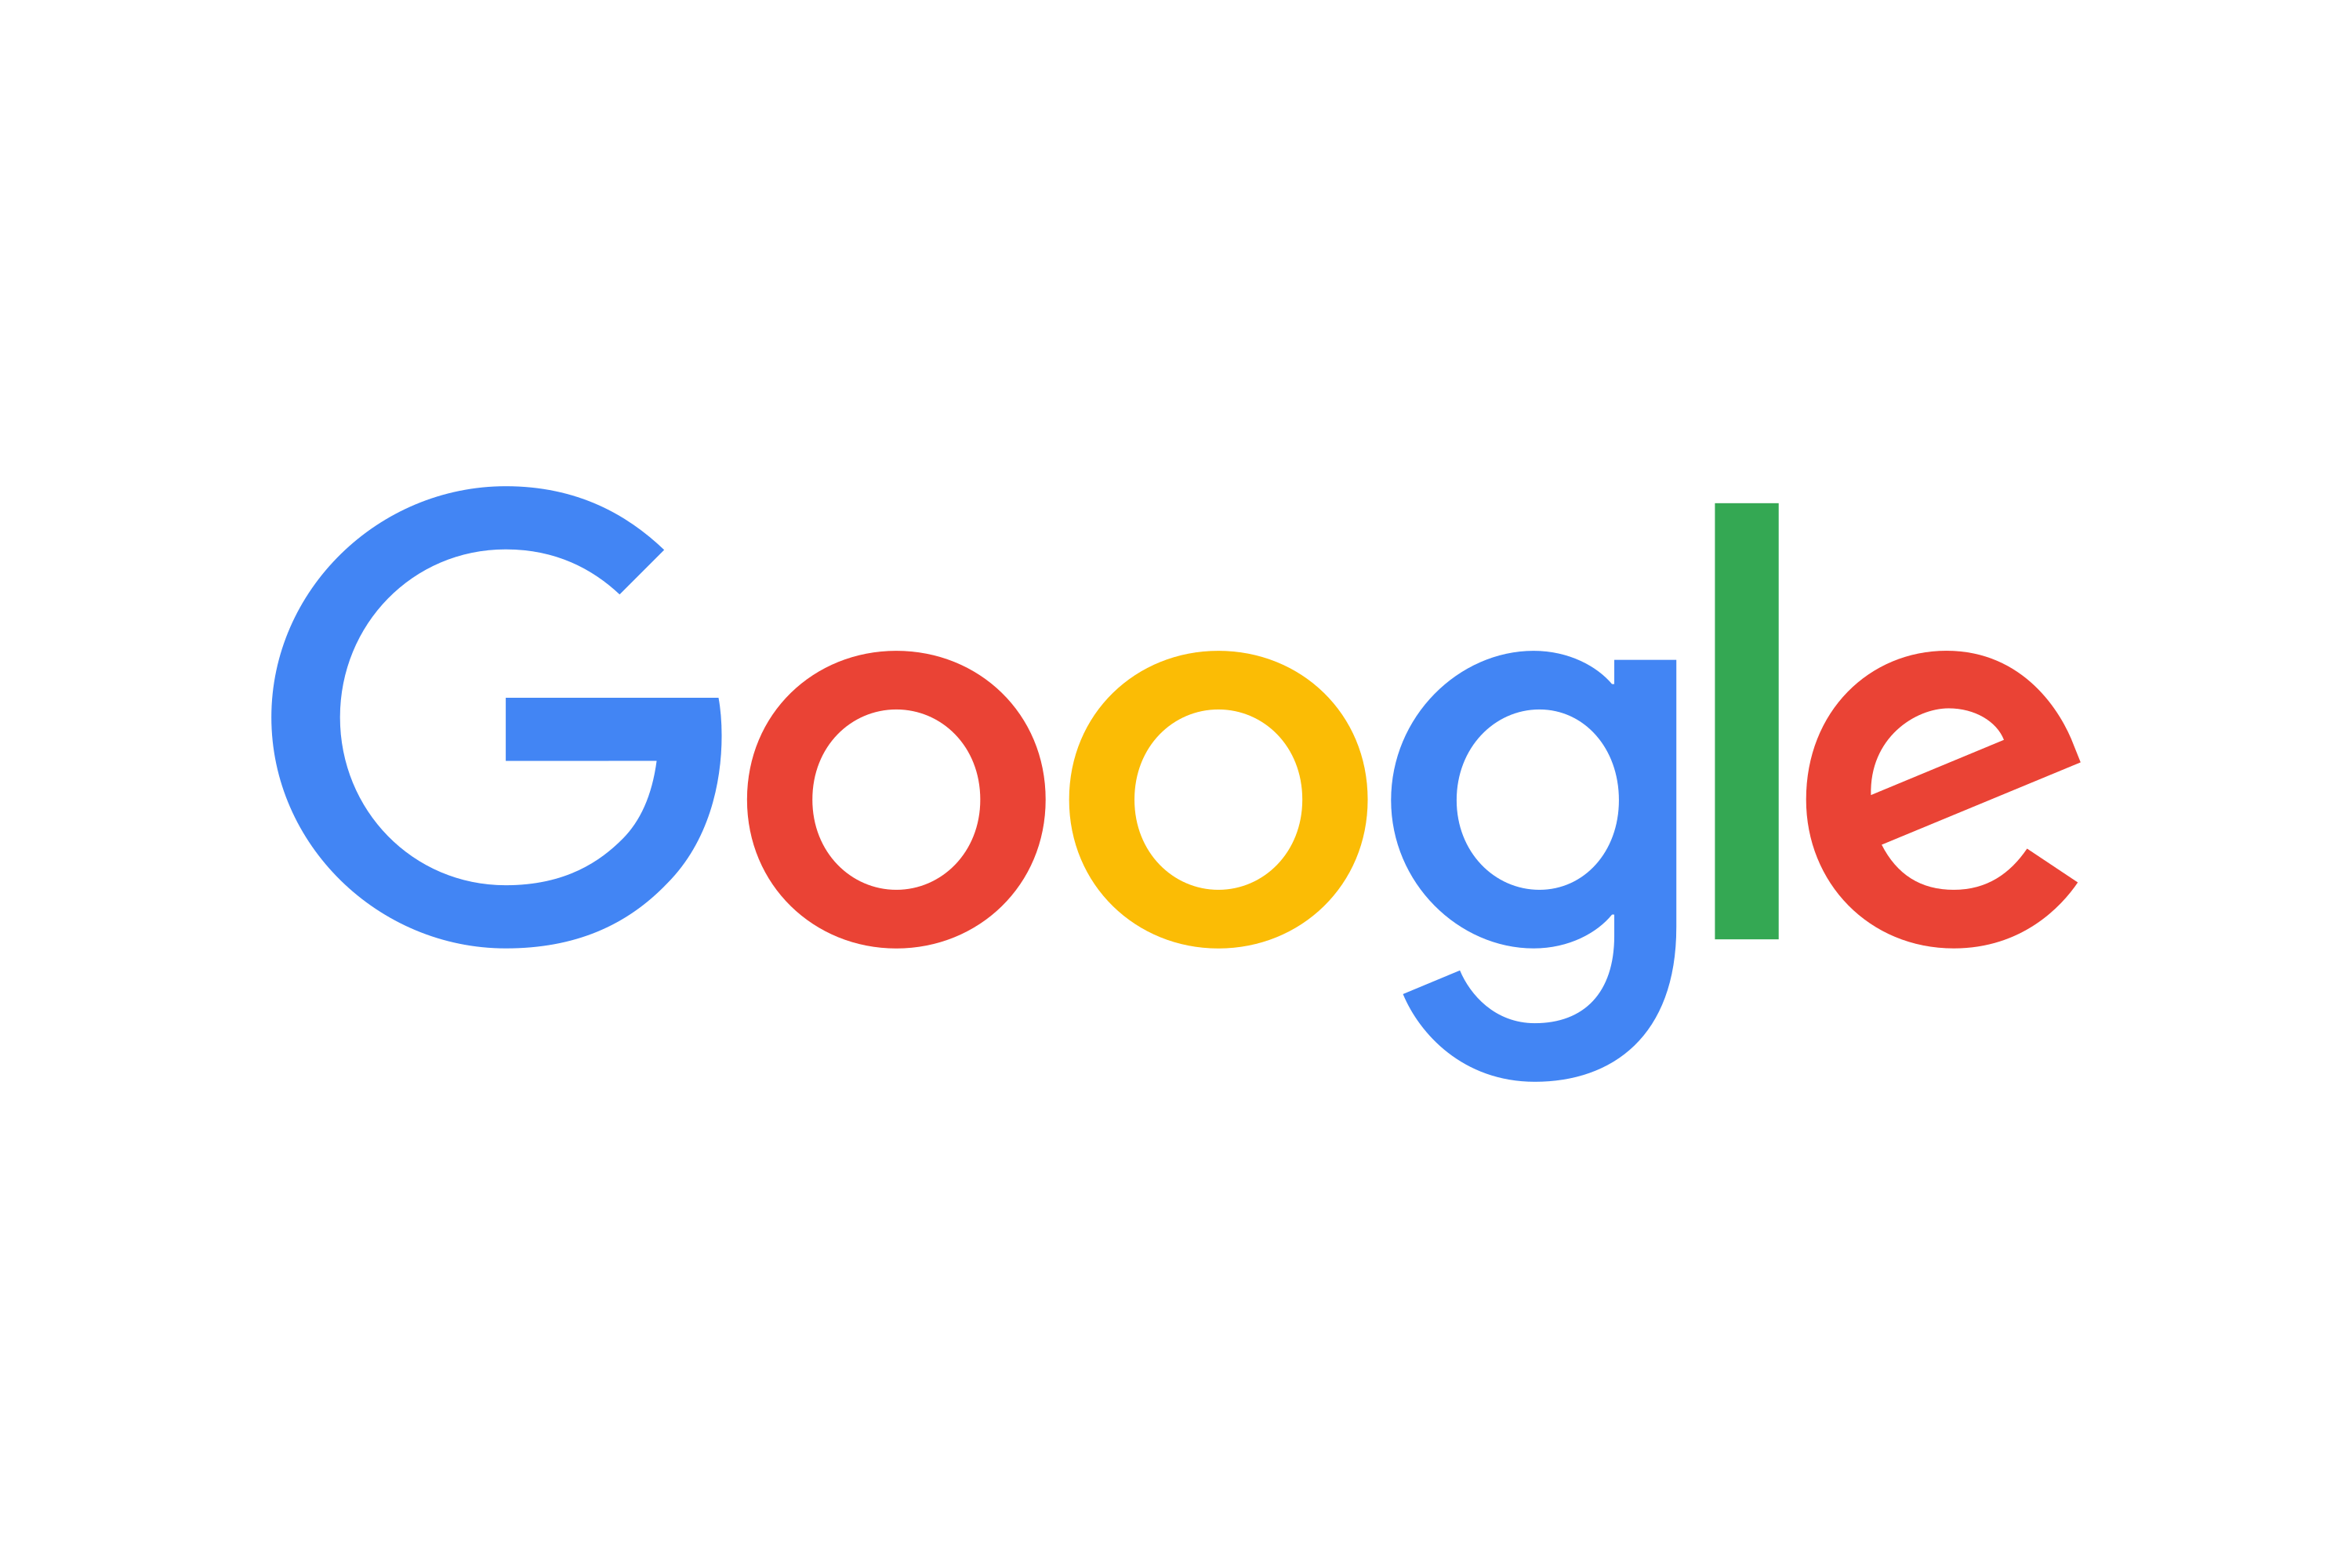 Download Google Search (Google Web Search) Logo in SVG Vector or